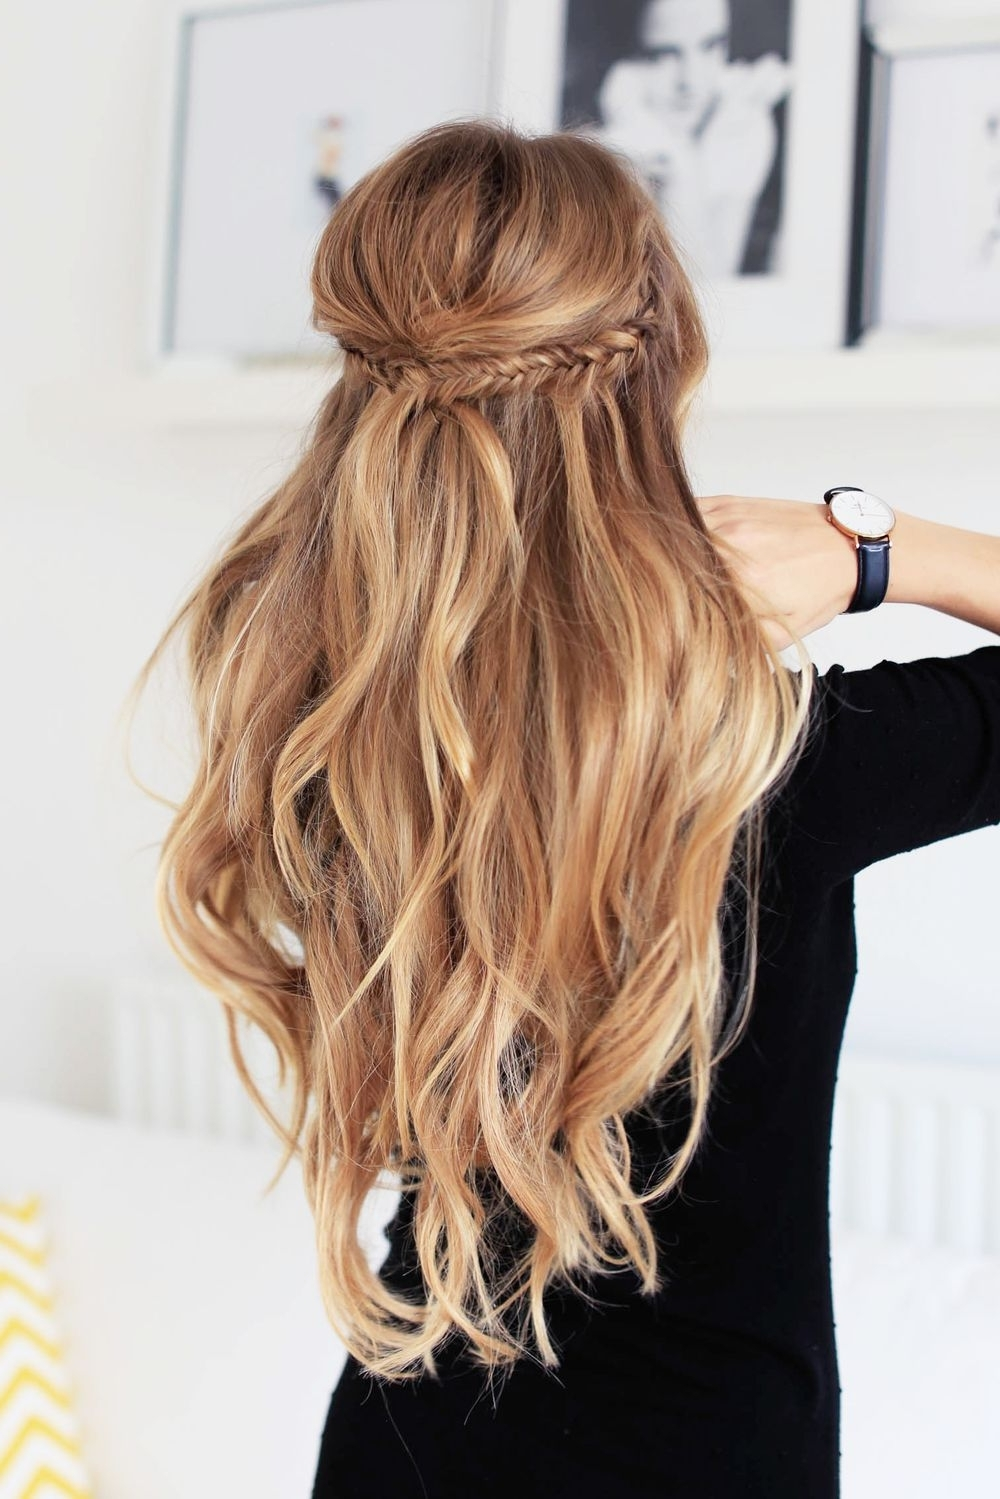 Best And Newest Ponytail Hairstyles With Wild Wavy Ombre With Make Two Small Fishtail Braids On Each Side, Then Put Them Together (View 3 of 20)